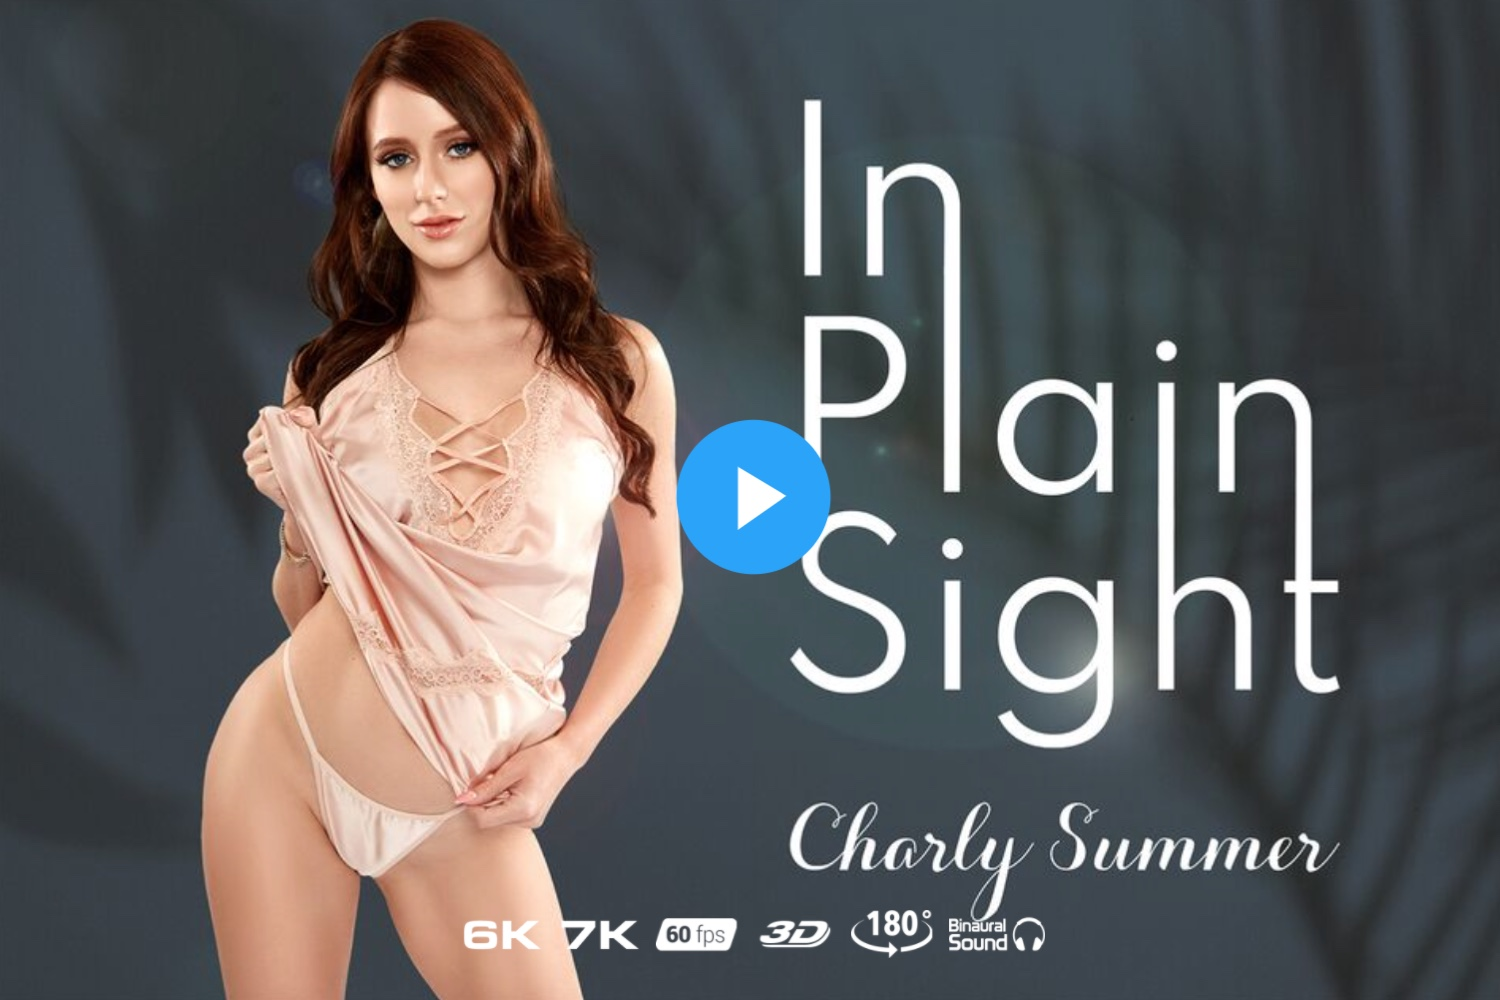 In Plain Sight - Charly Summer VR Porn - Charly Summer Virtual Reality Porn